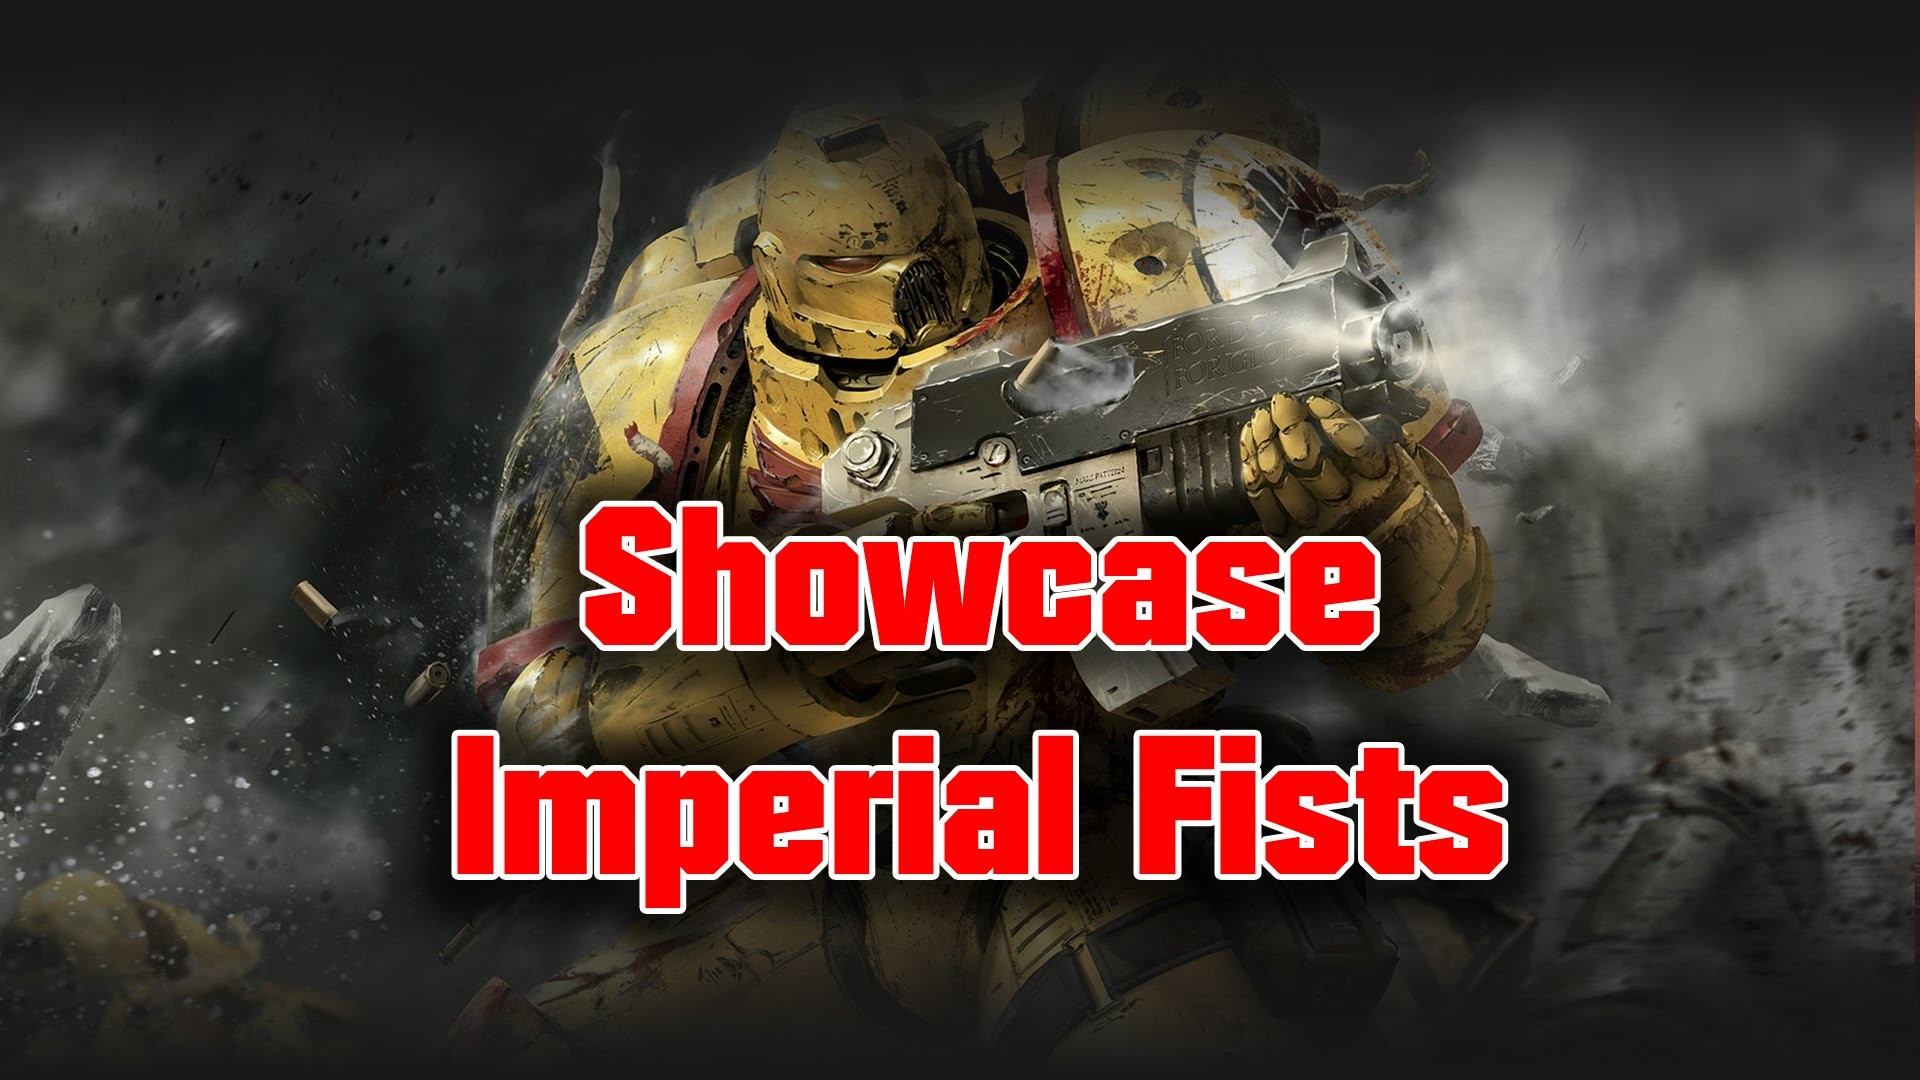 1920x1080 Bunkervideos - Showcase Imperial Fists